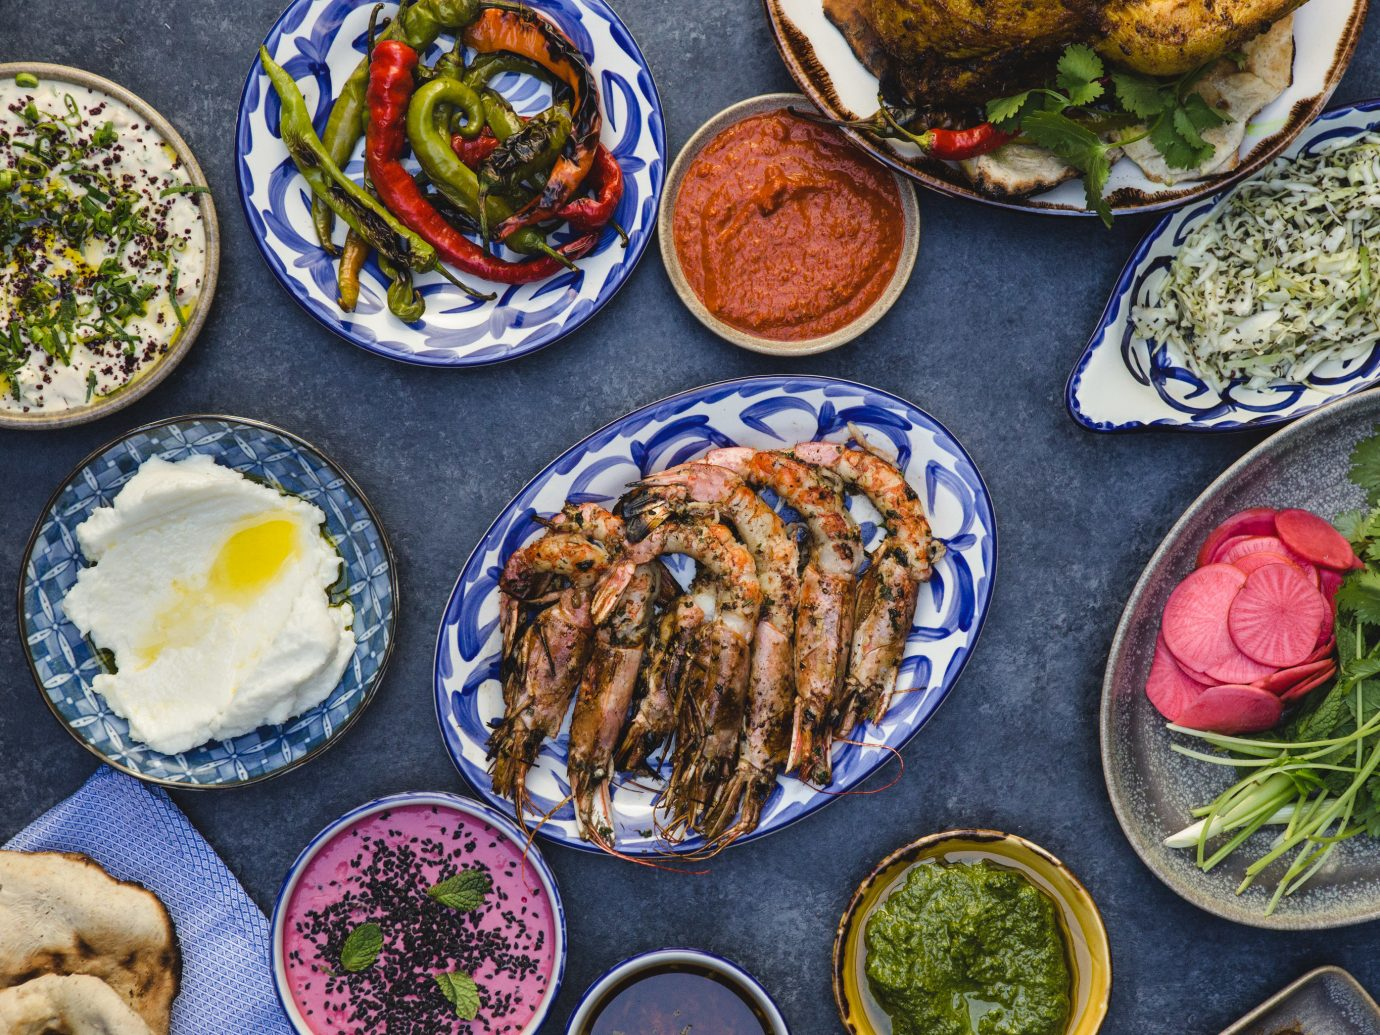 Food + Drink food plate table dish meal bowl different cuisine many vegetable vegetarian food meze Seafood lunch asian food recipe appetizer leaf vegetable items side dish middle eastern food various several set containing meat plastic